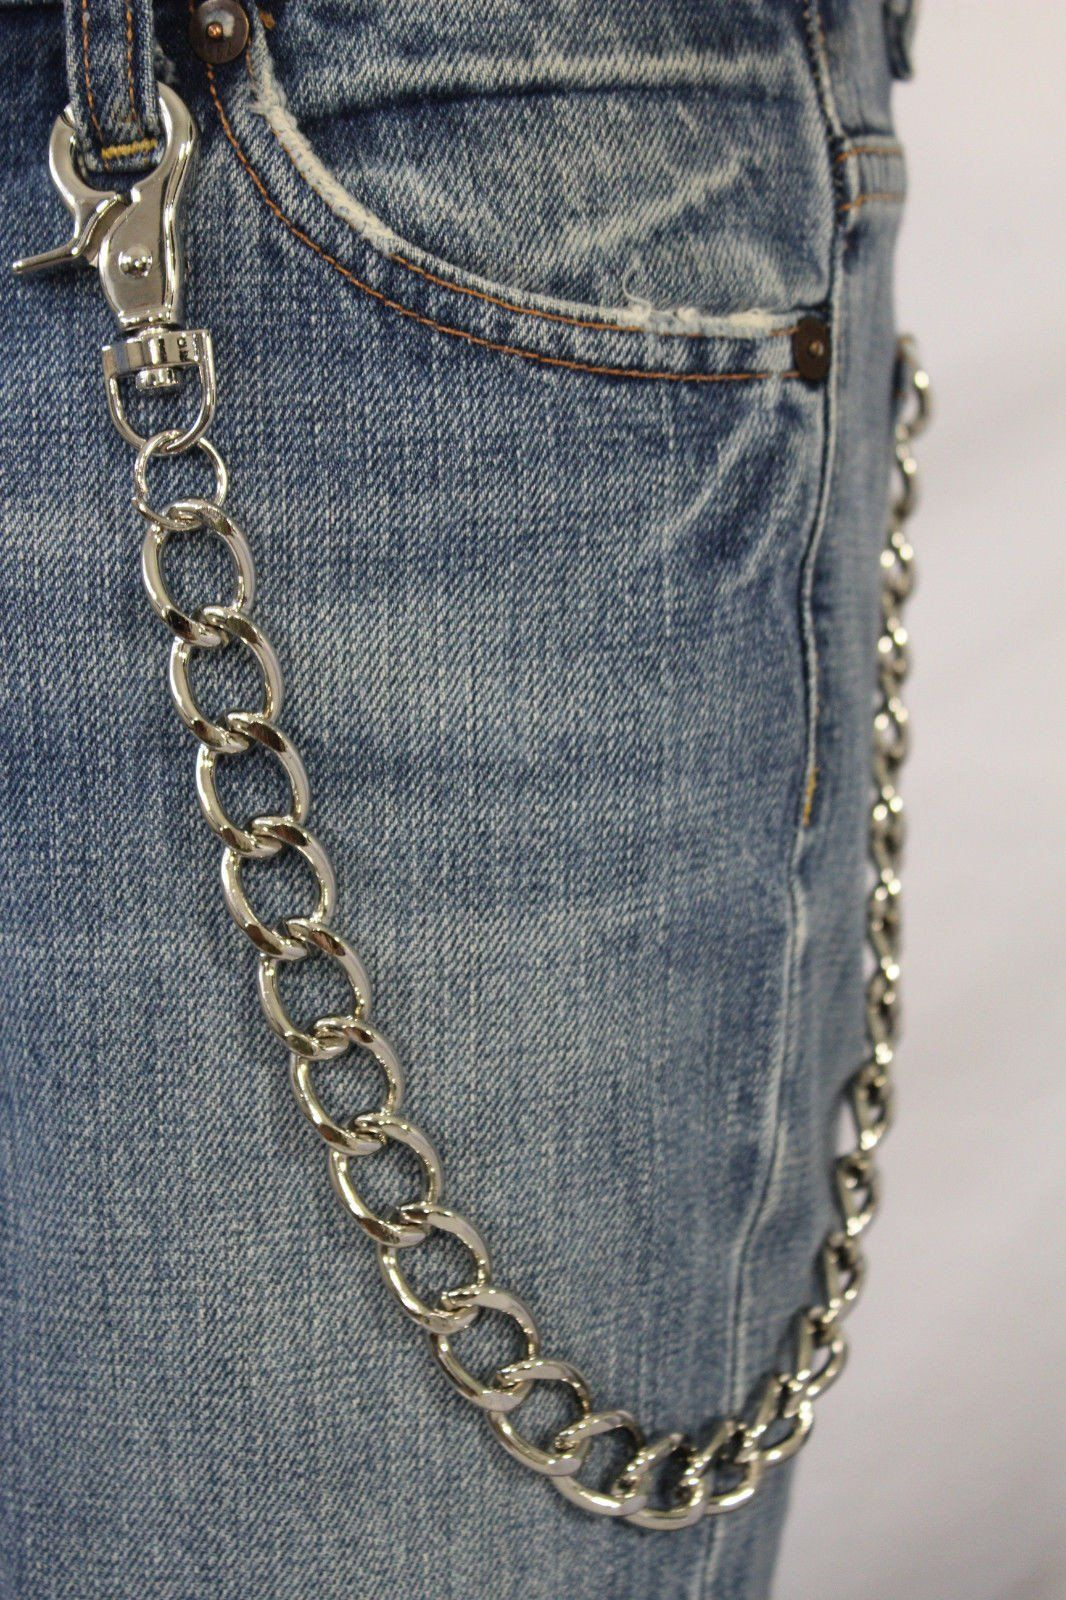 Men/'s Wallet Chain Gold Plated Metal Pants Chain Biker Trucker Punk Key Chain